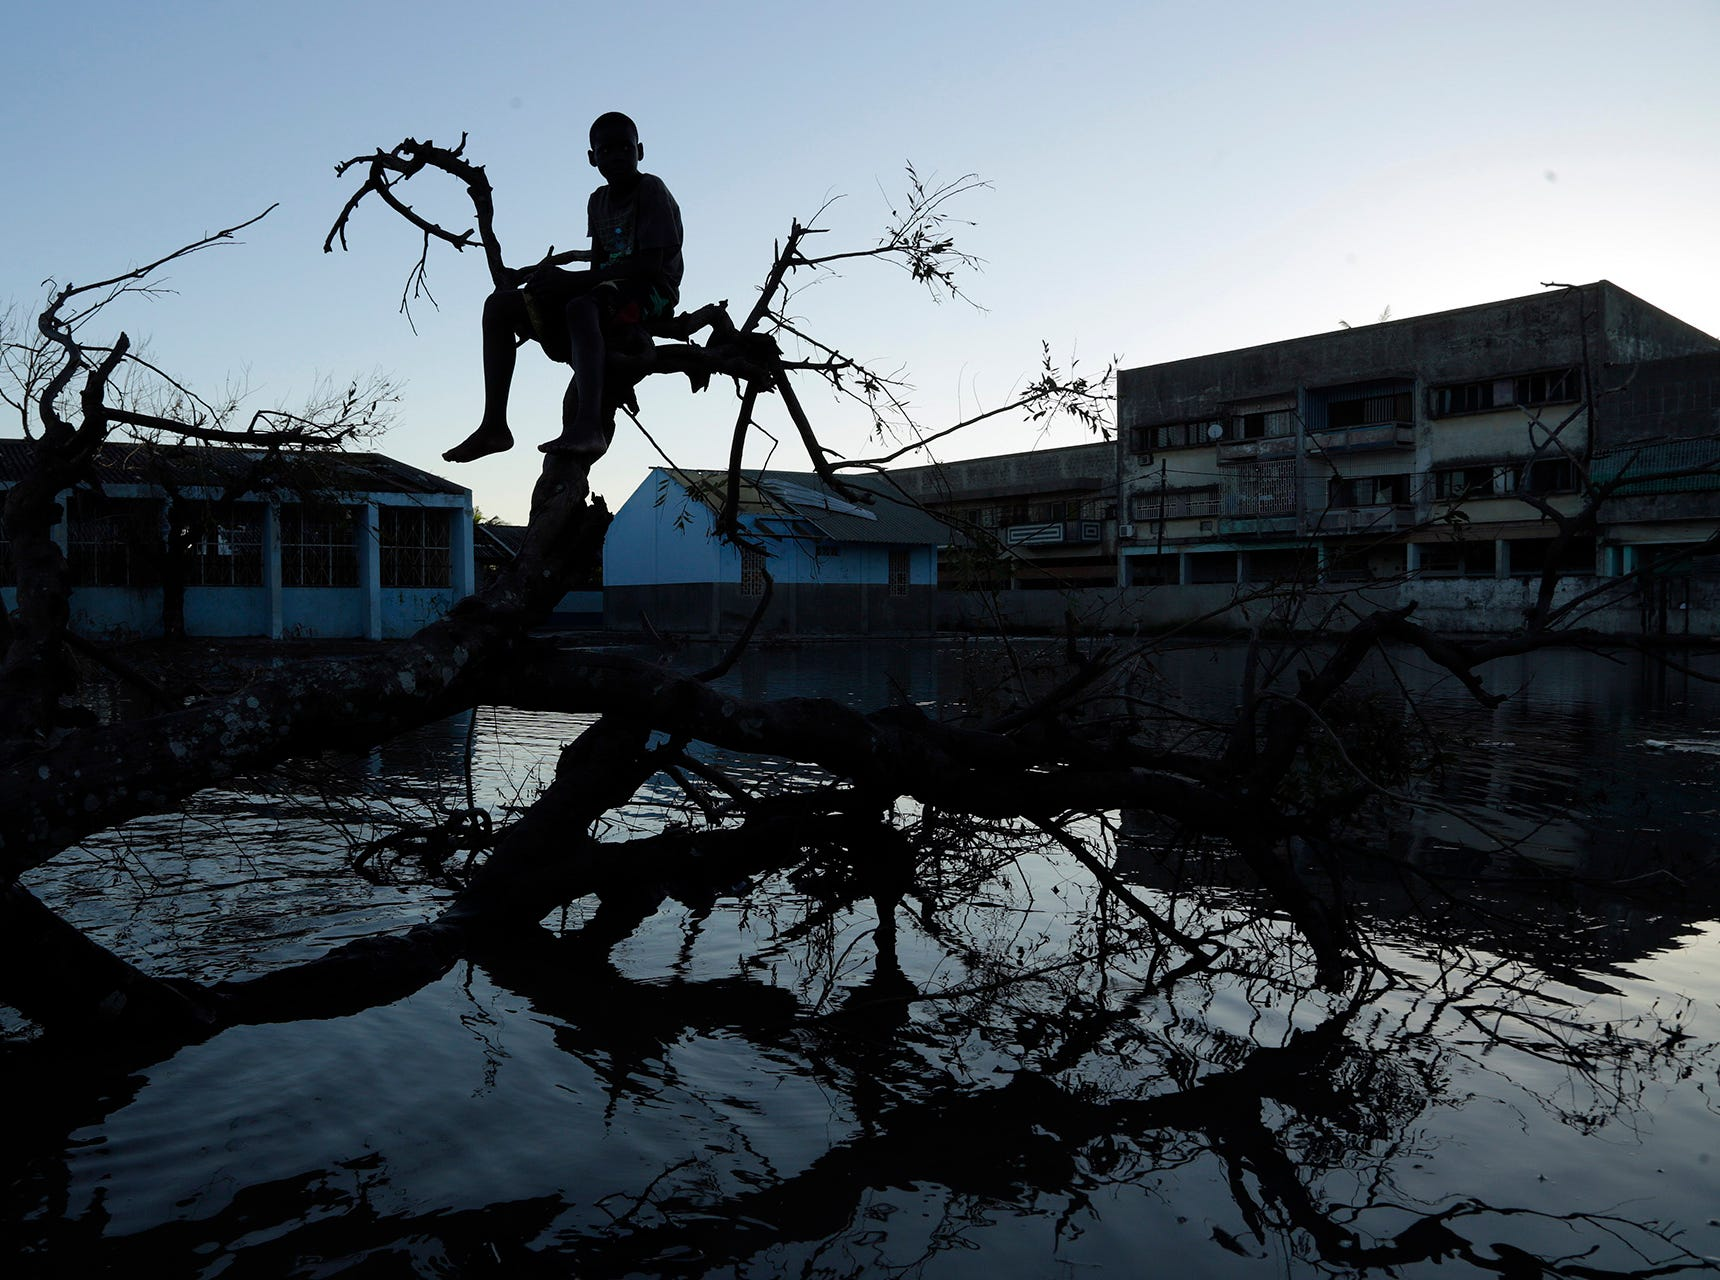 A young boy sits on a fallen tree outside a school in Beira, Mozambique, Monday, March 25, 2019. The United Nations is making an emergency appeal for $282 million for the next three months to help Mozambique start recovering from the devastation of Cyclone Idai.